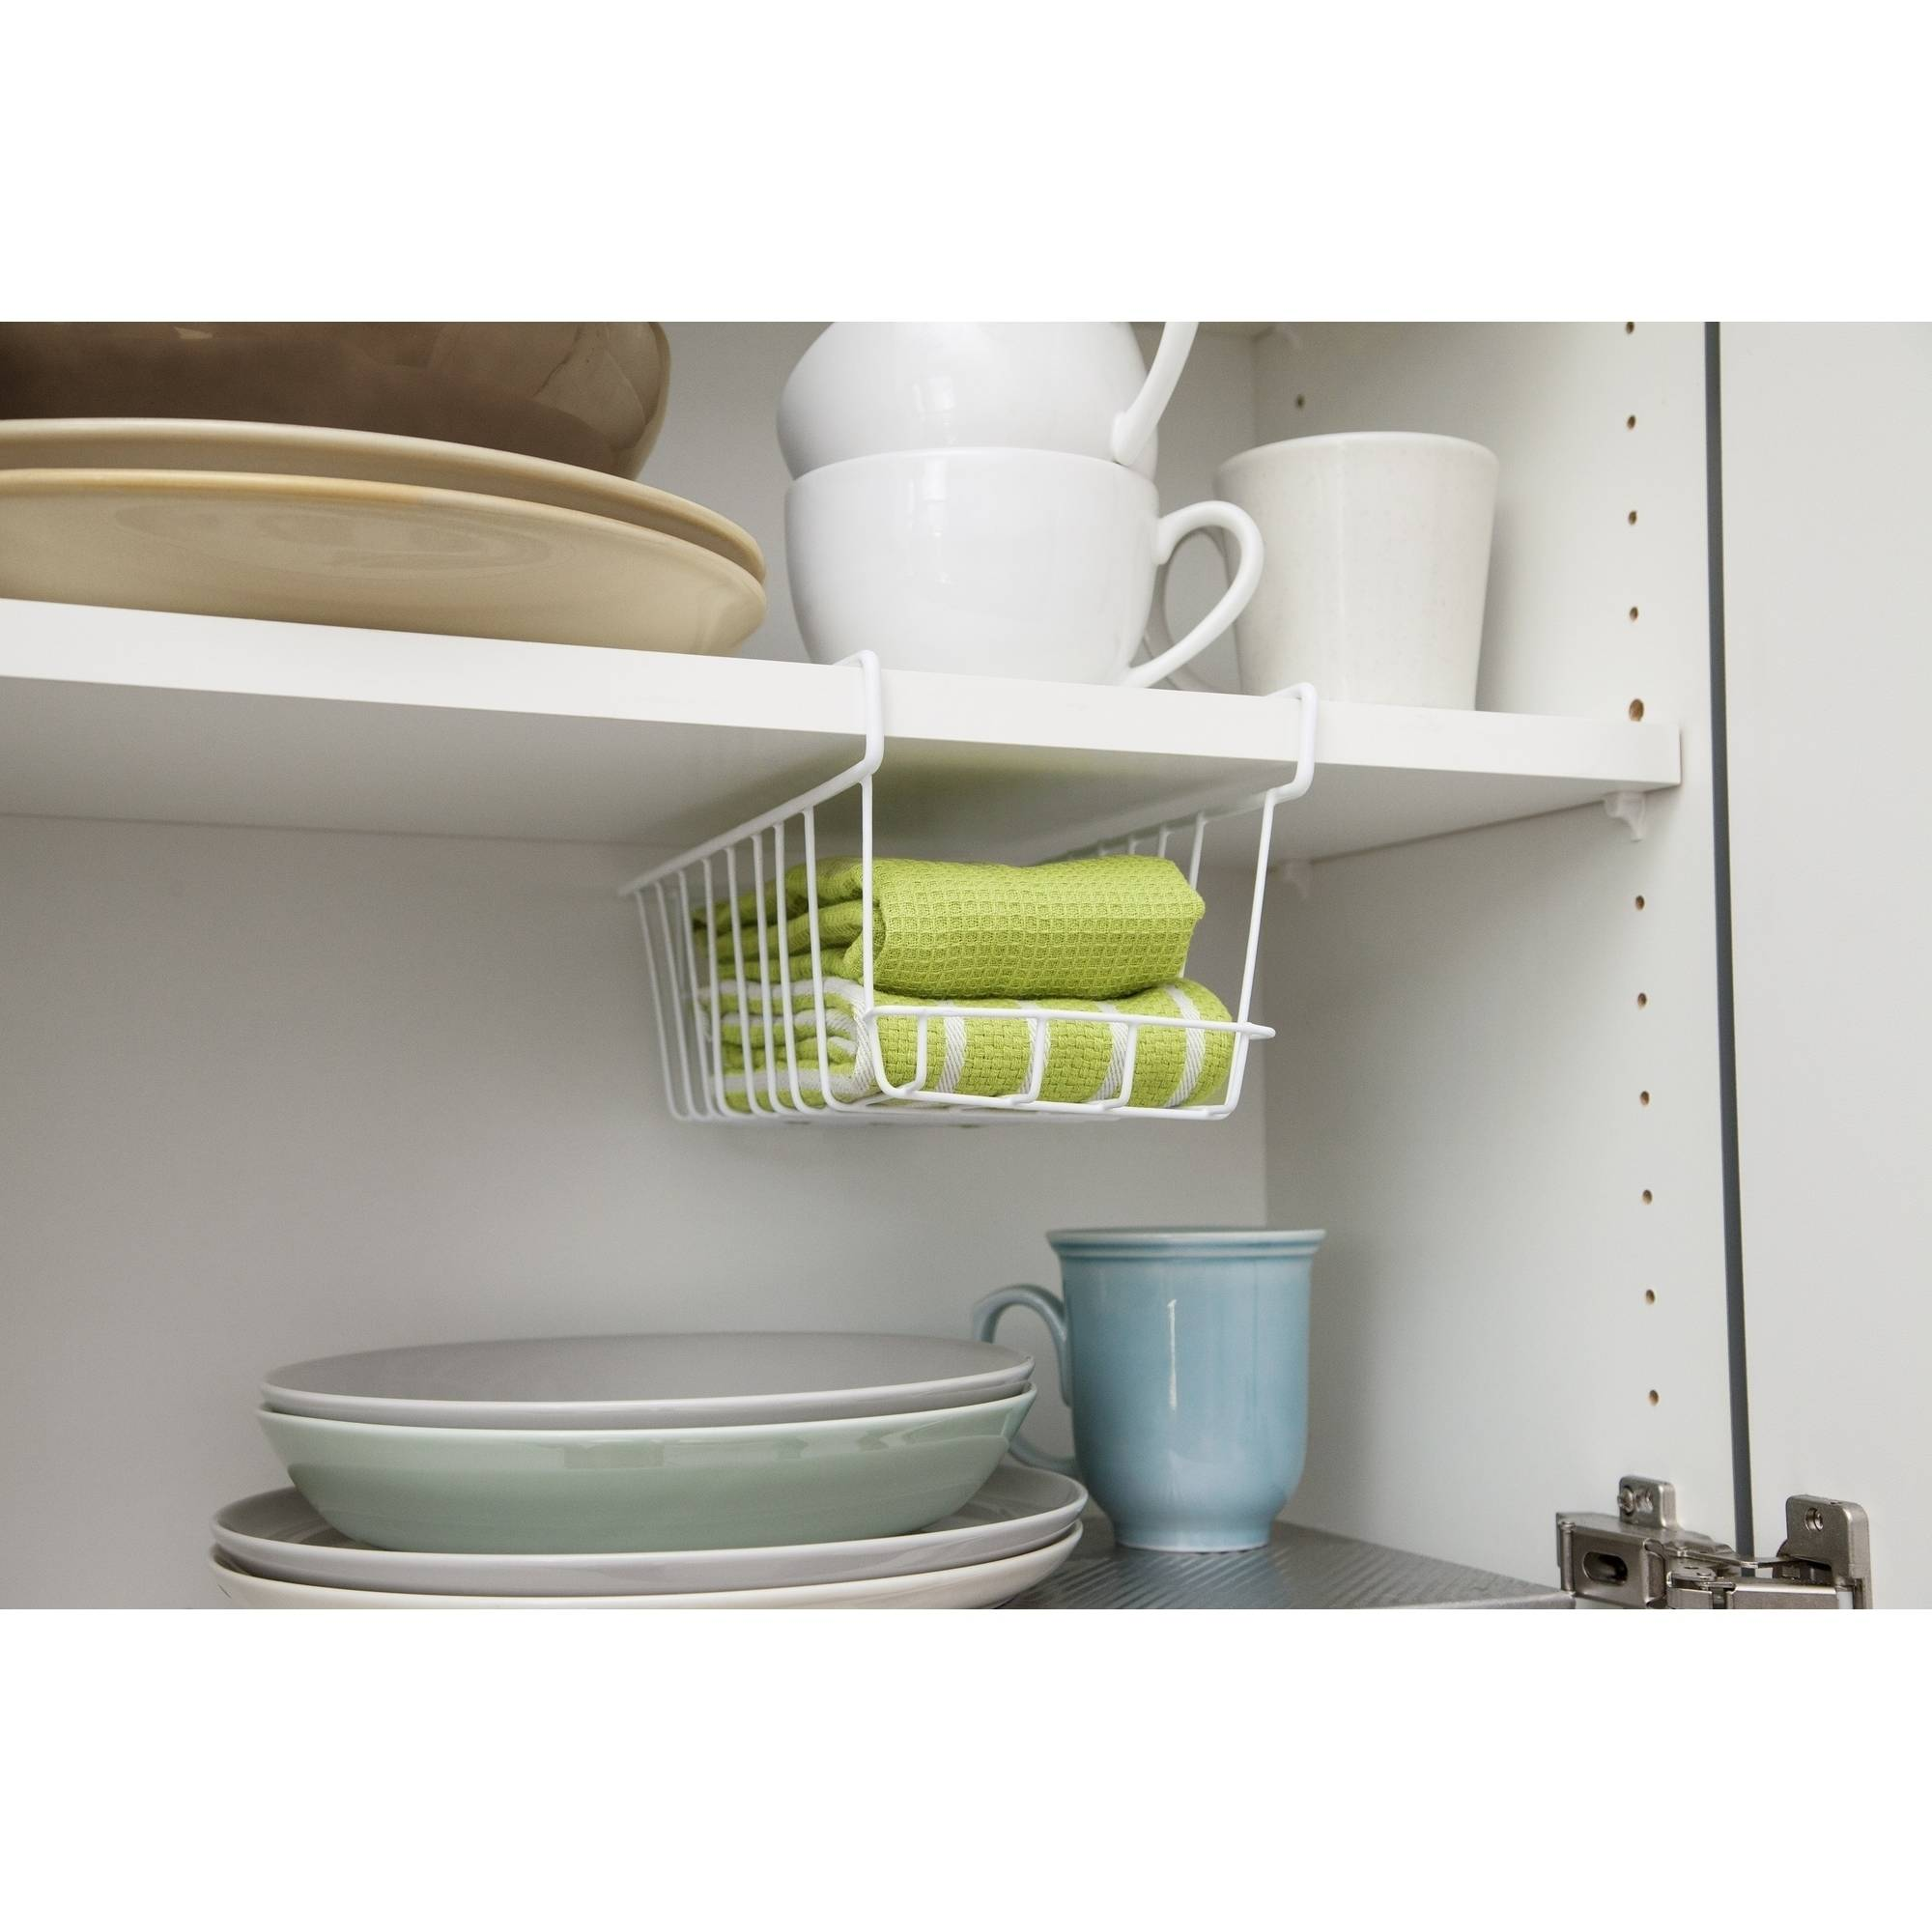 IRIS Small Under Shelf Basket